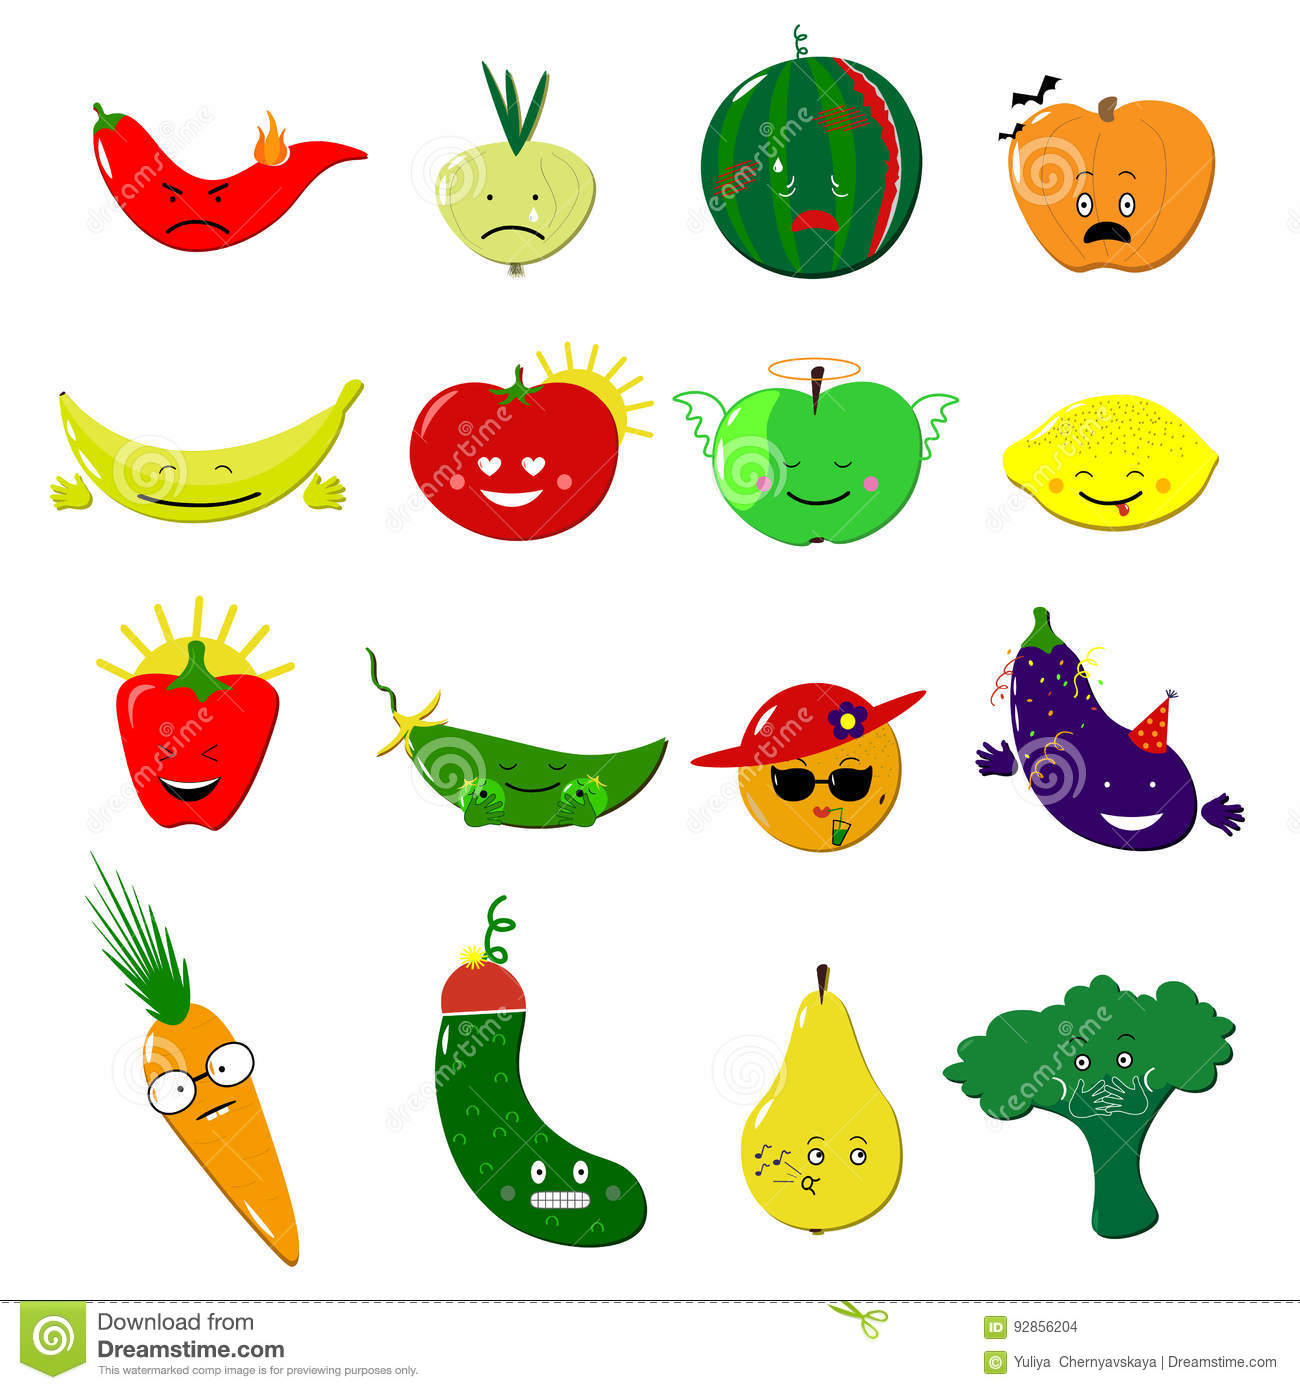 Emoticons Food Vector Set Cute Funny Stickers Emoji Fruits And Vegetables Flat Cartoon Style